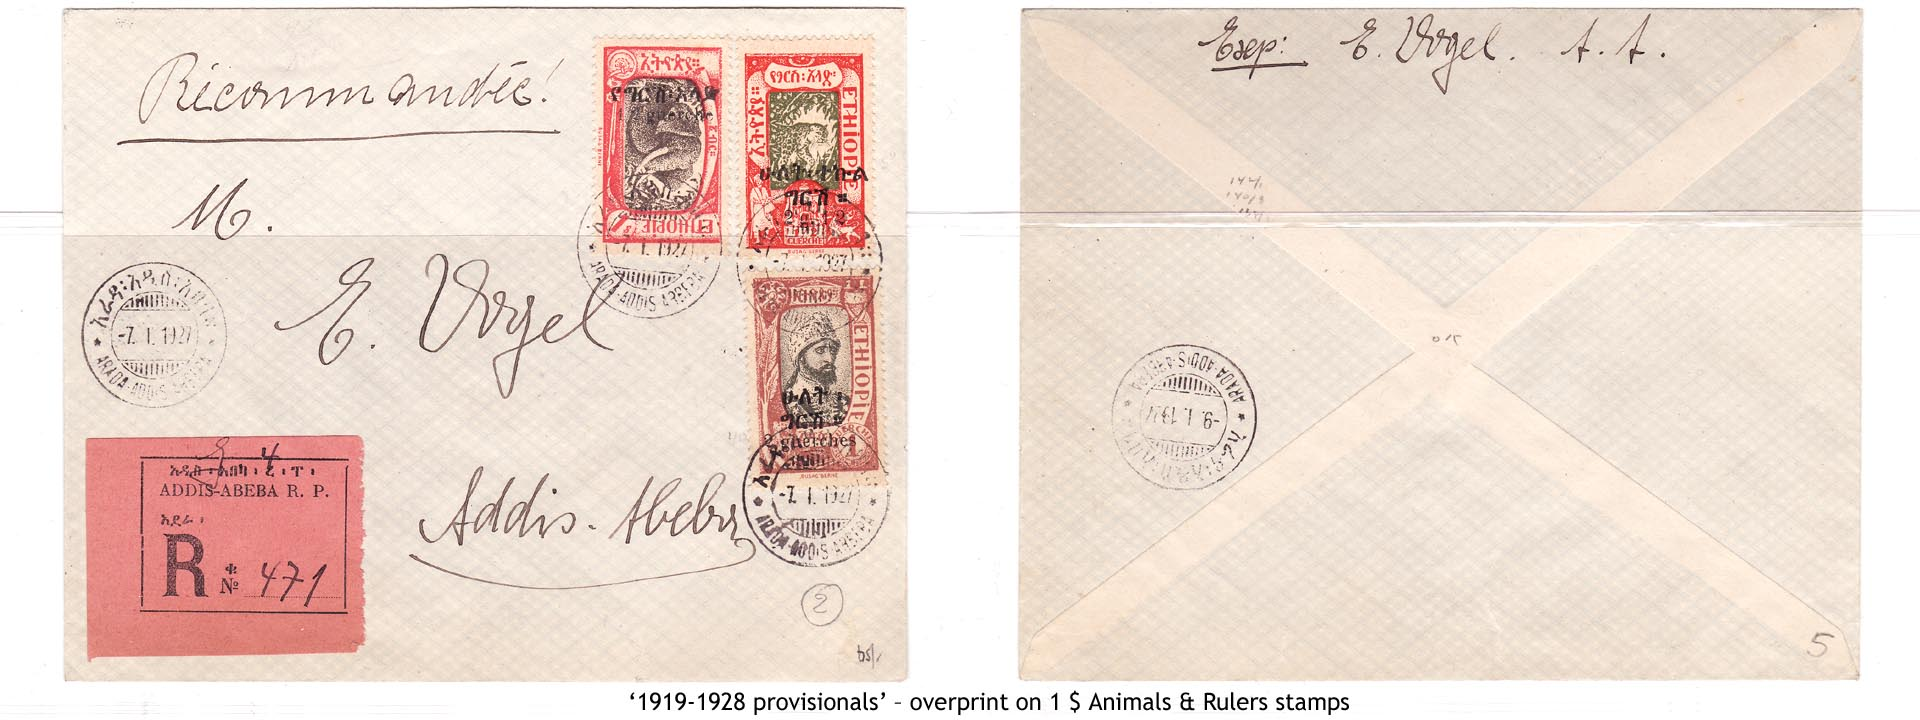 1919-1928 provisionals' – overprint on 1$ Animals & Rulers stamps